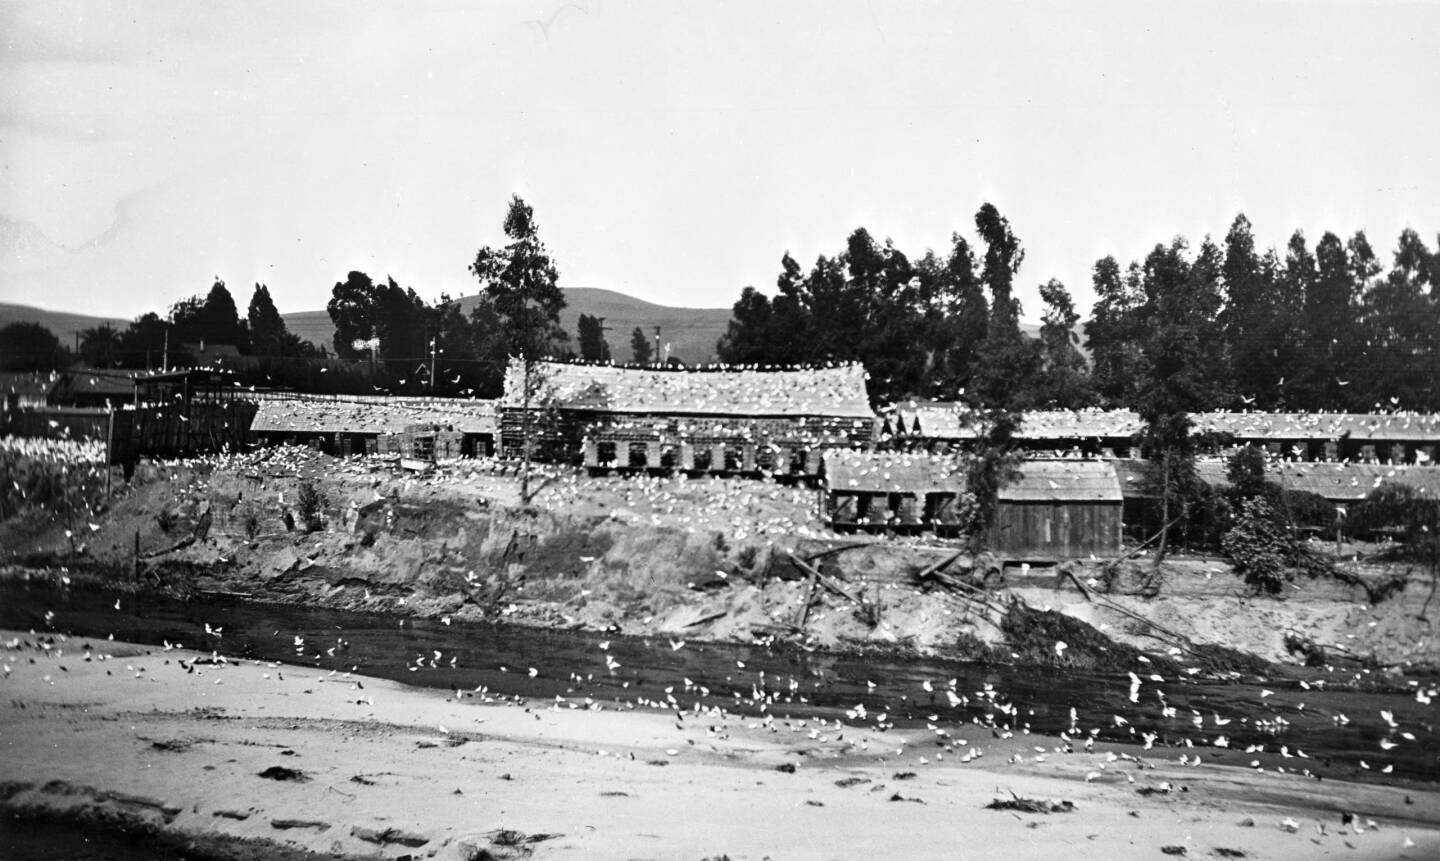 Another view of the pigeon ranch from across the river, ca. 1905. Courtesy of the Photo Collection, Los Angeles Public Library.